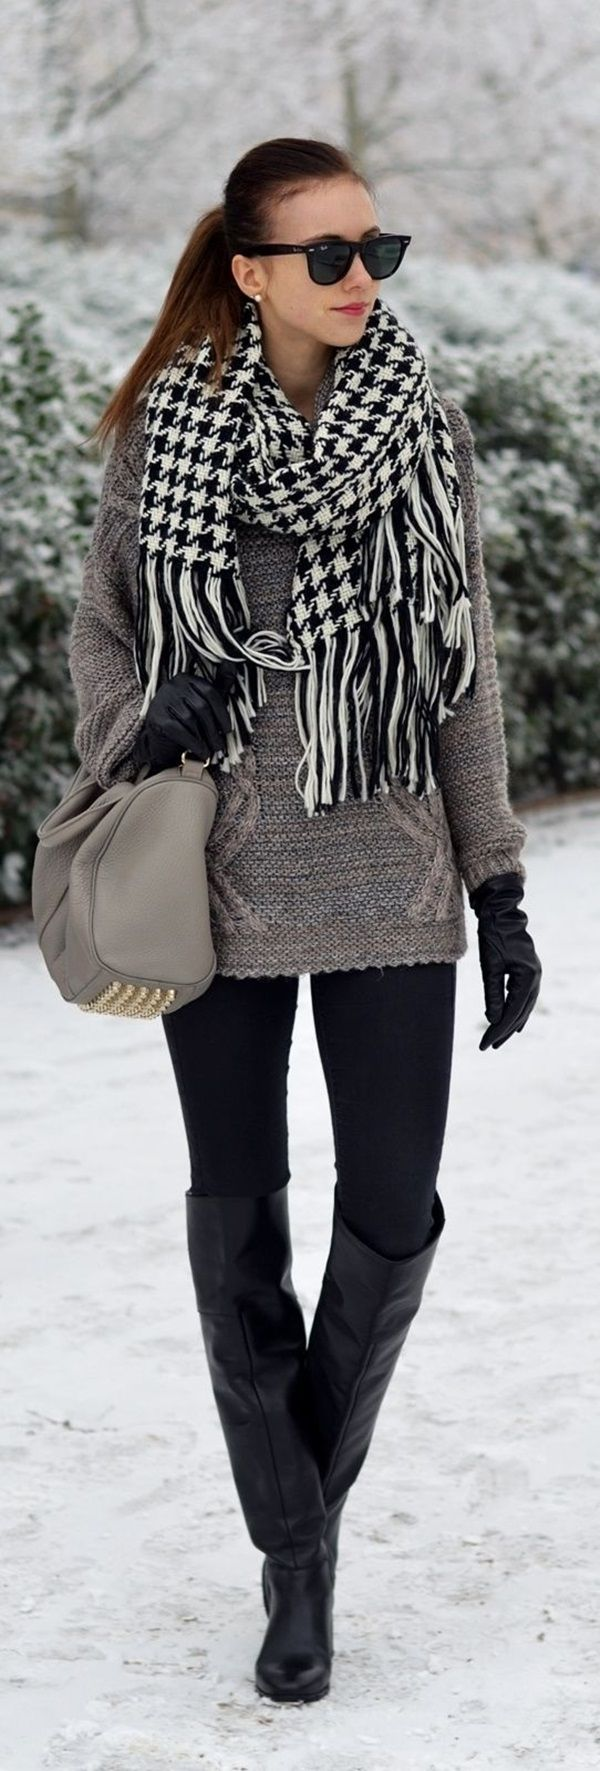 40 Stylish Fall Outfits For Women | http://fashion.ekstrax.com/2014/09/stylish-fall-outfits-for-women.html